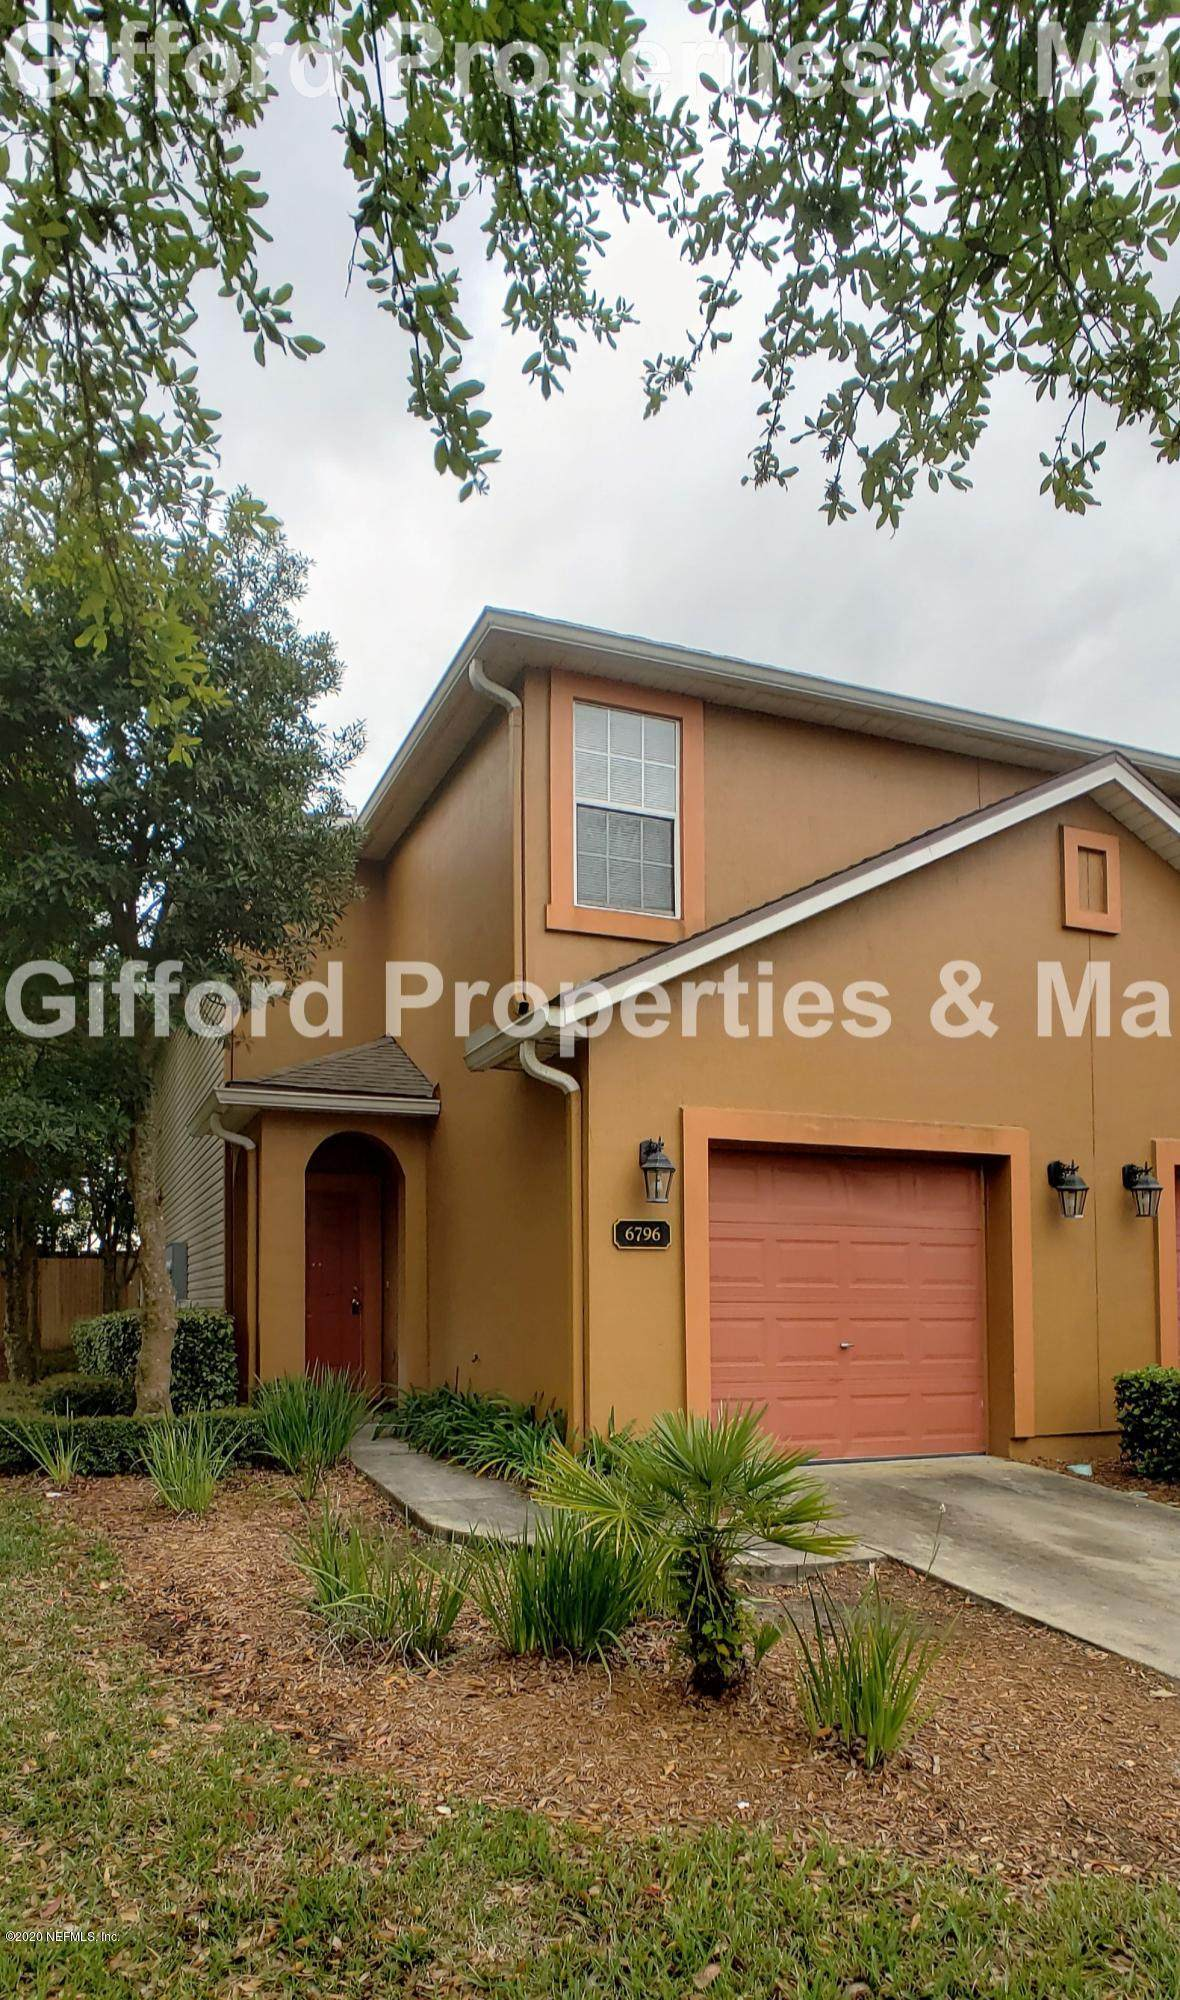 6796 Misty View Dr - Photo 1